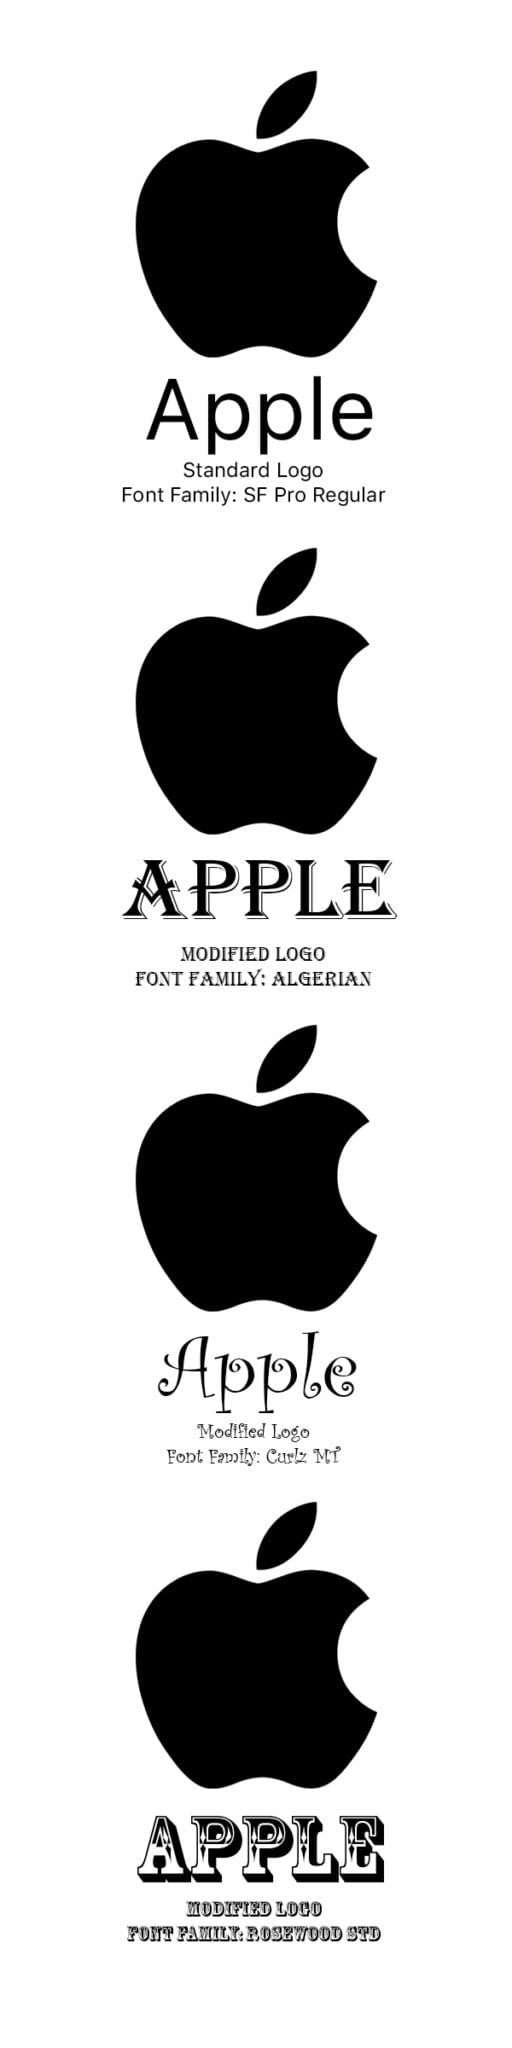 Apple's logo takes on a different nature when you change the font.